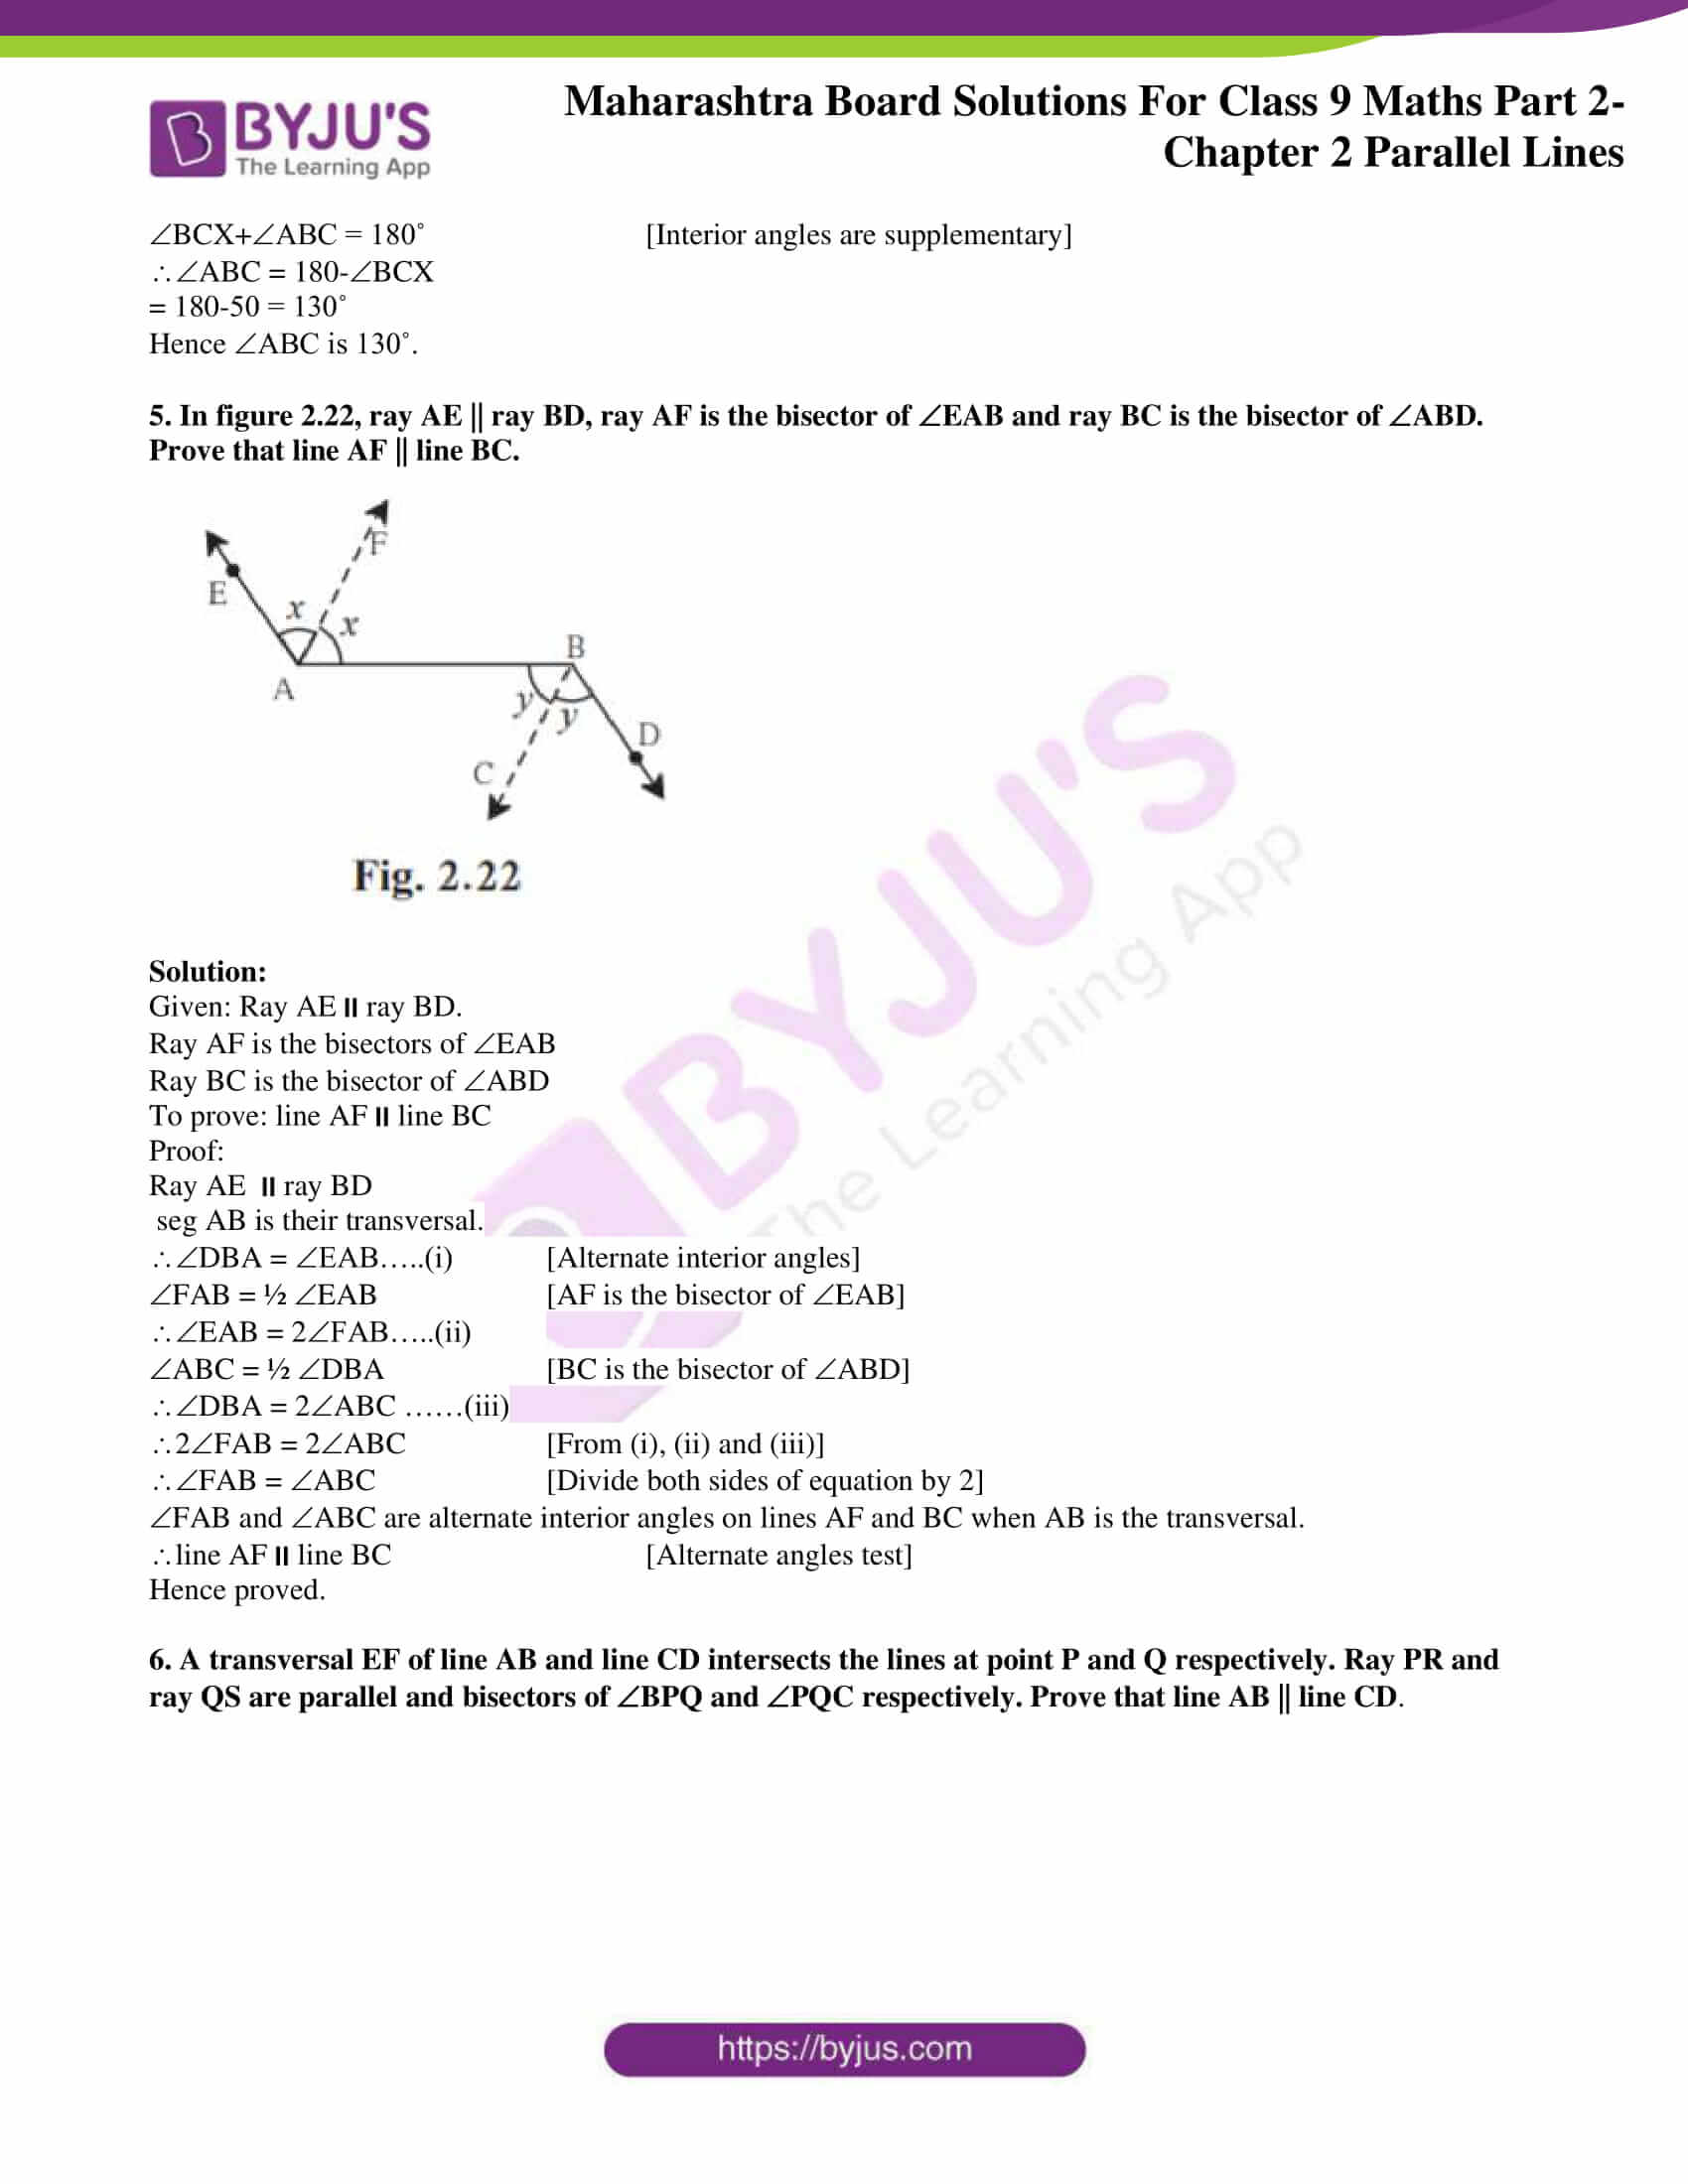 msbshse solutions for class 9 maths part 2 chapter 2 10